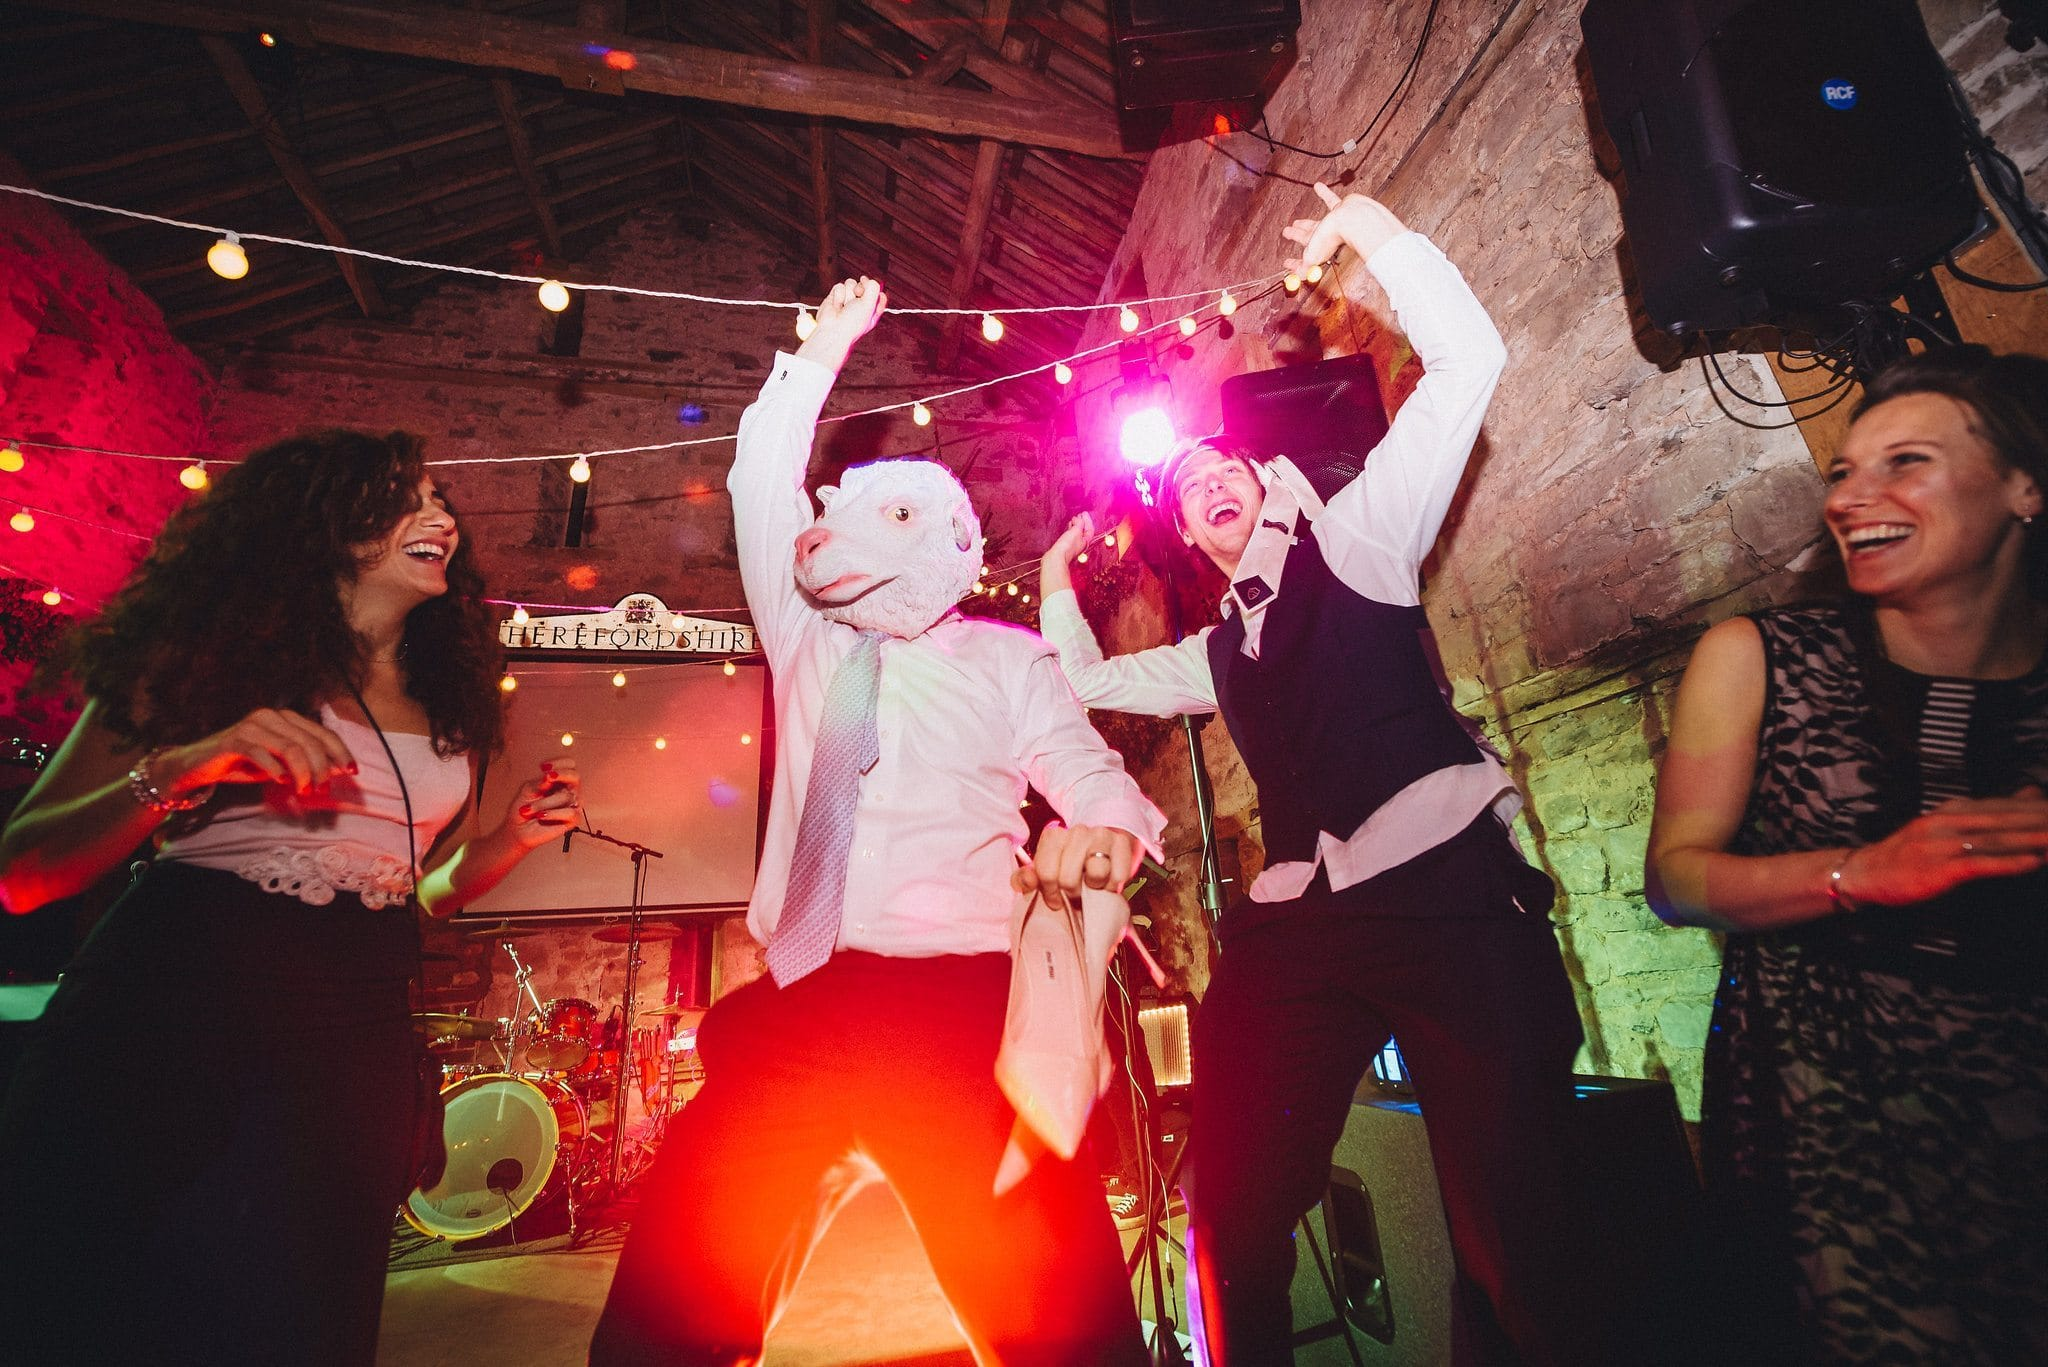 Man in sheep's head mask on the dance floor